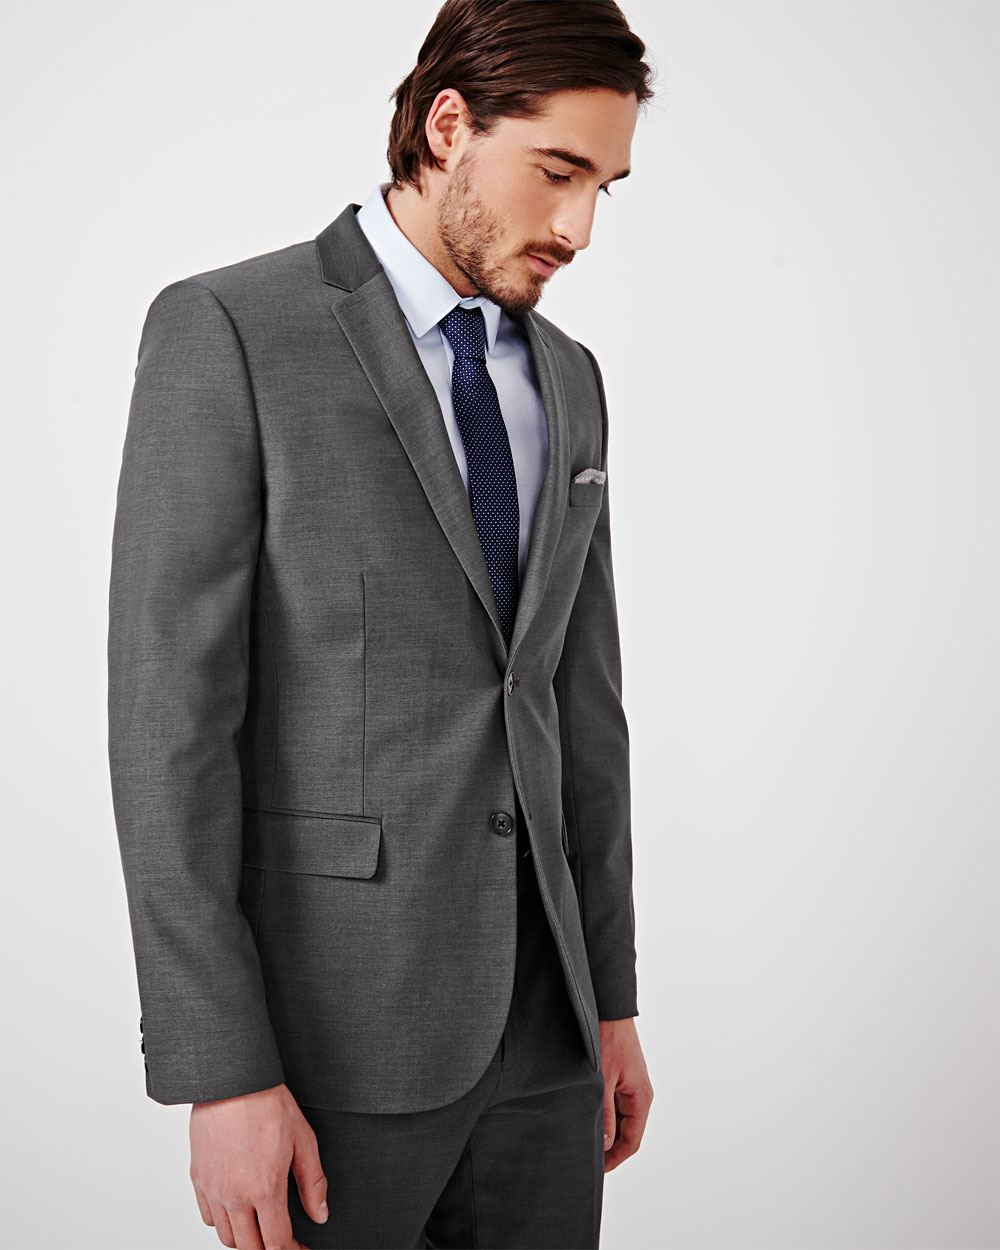 Essential Slim Fit Blazer - Regular